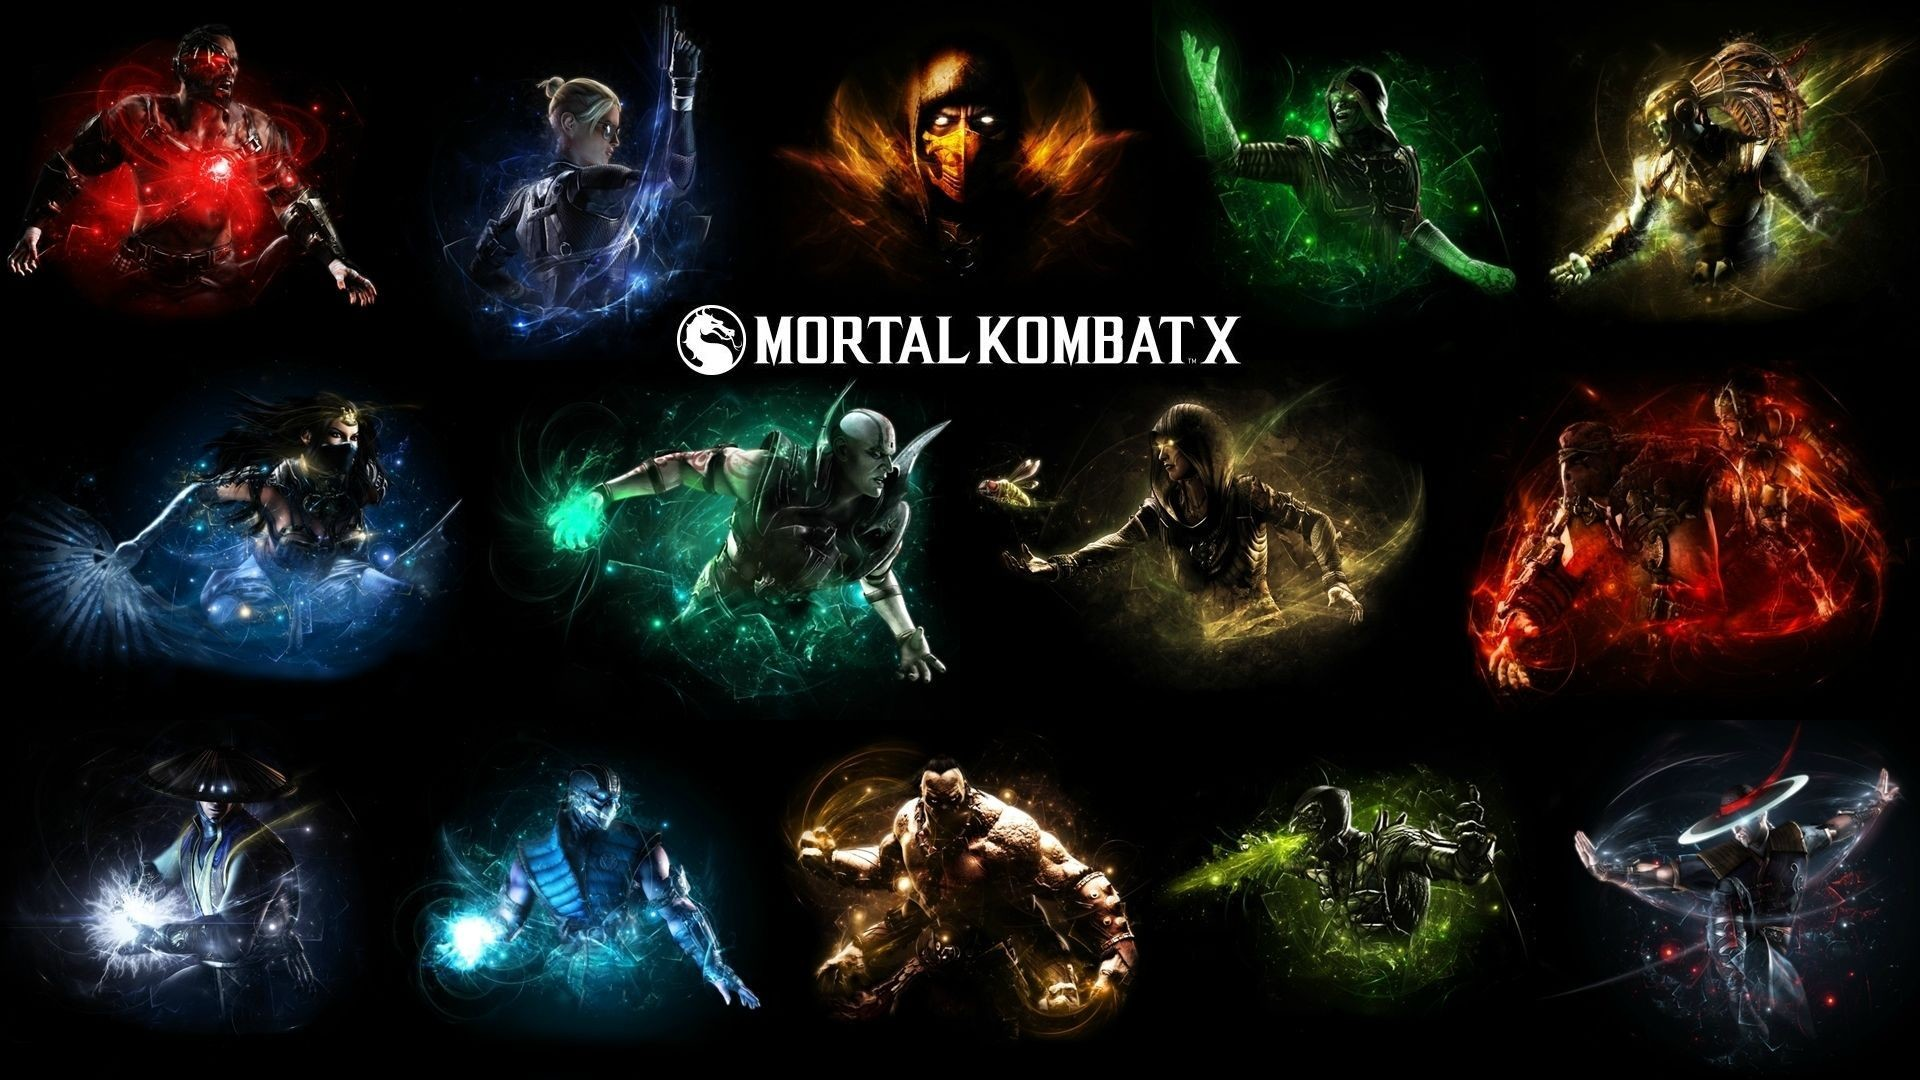 Wallpapers Of Mortal Kombat Posted By Zoey Thompson